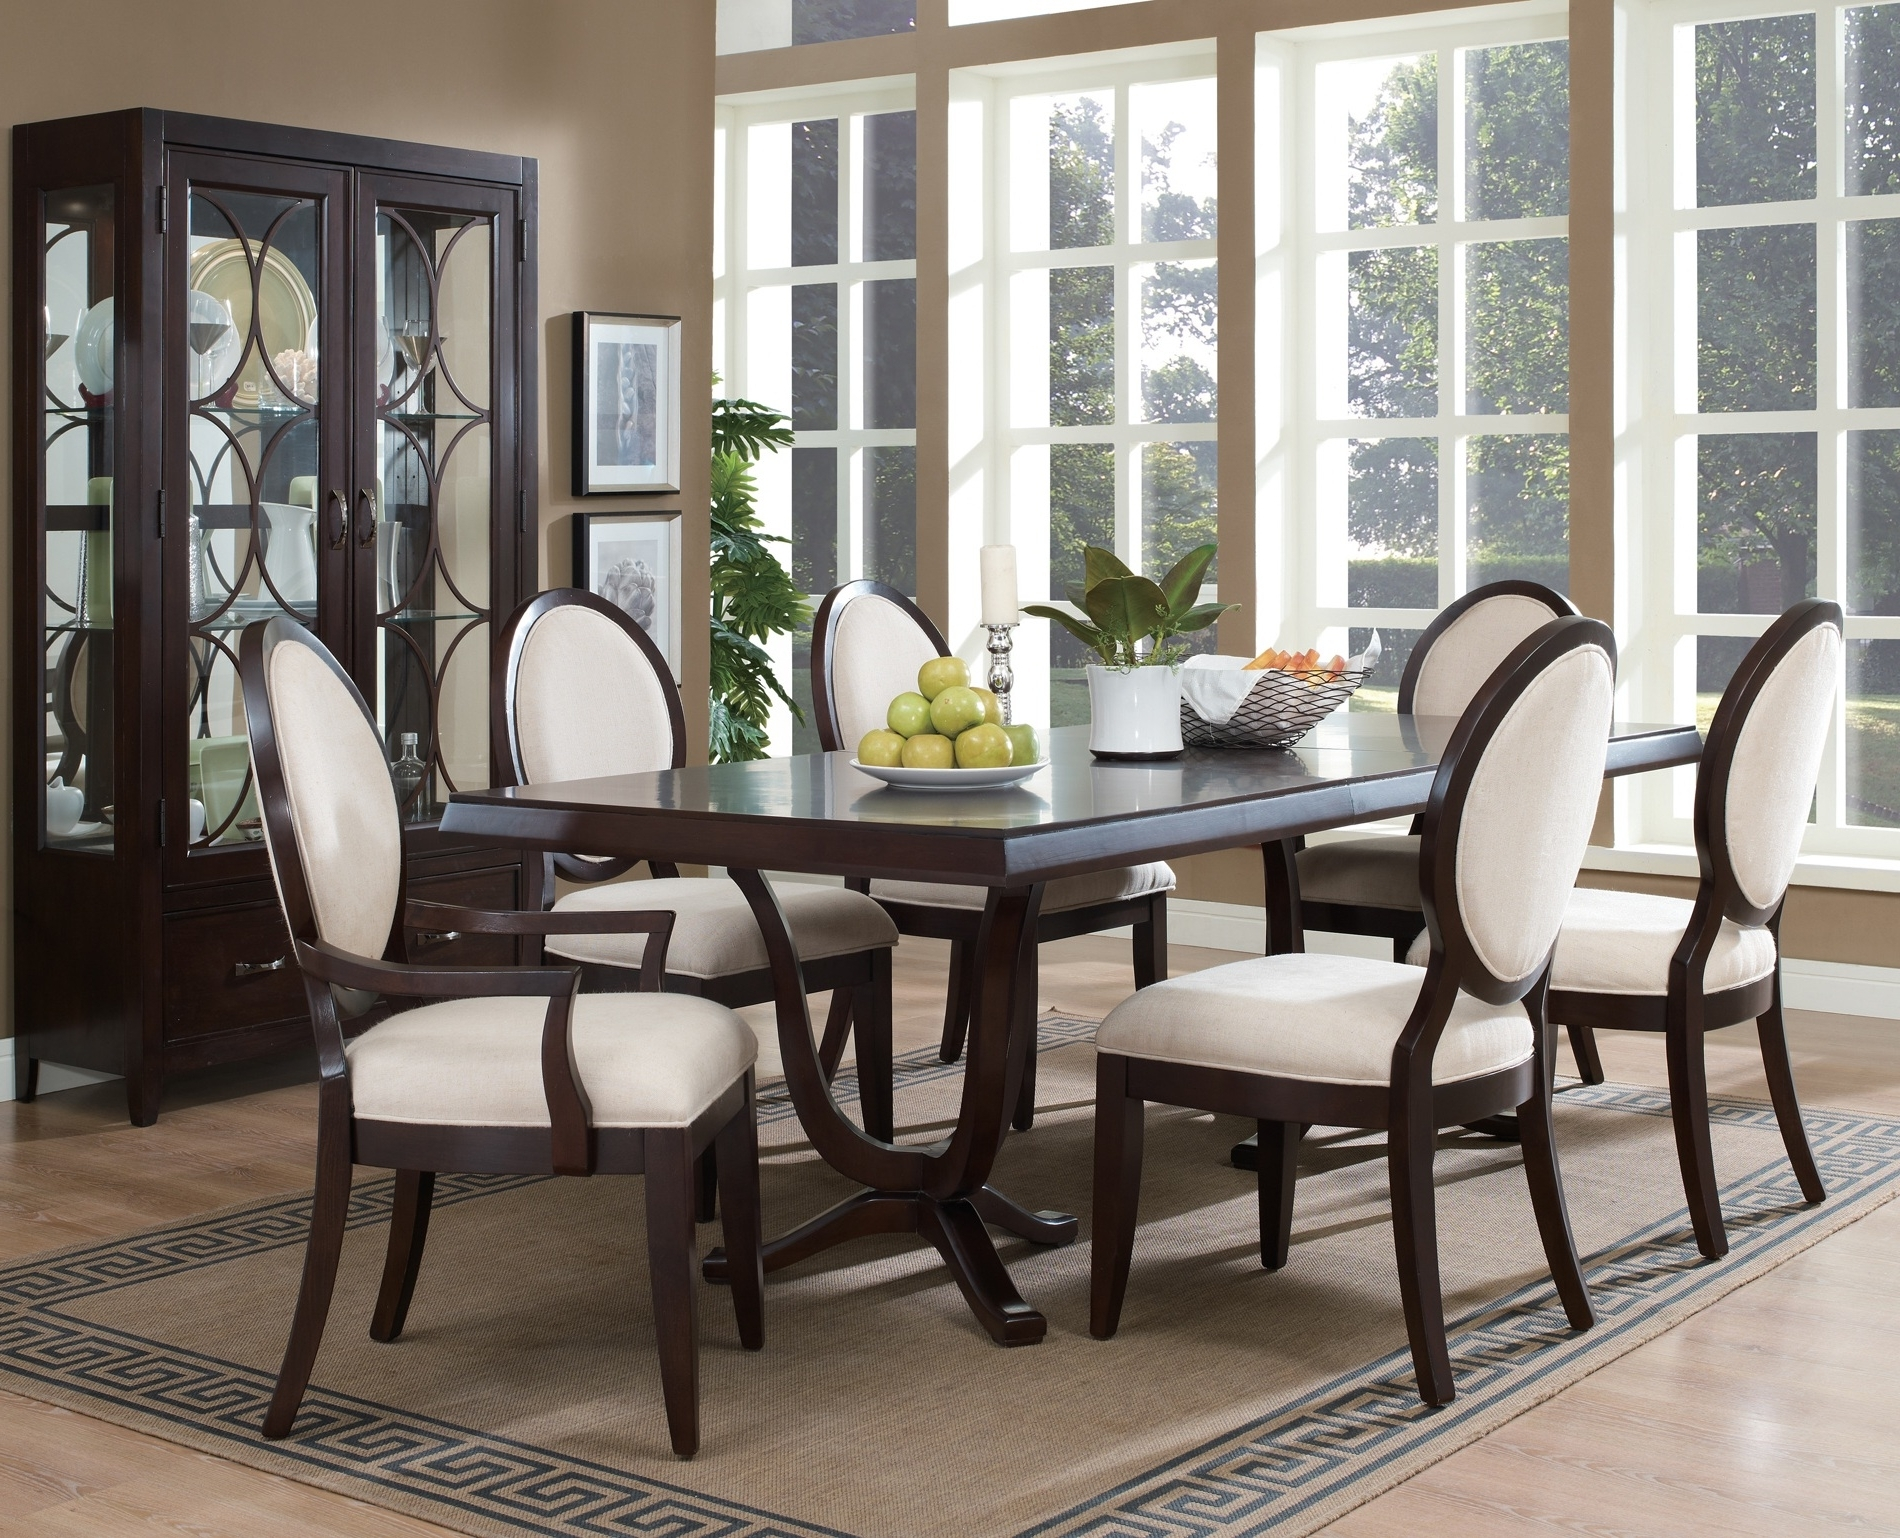 Widely Used Dining Tables And Chairs Sets In Beautiful Dining Room Set Ideal Dining Room Table And Chair Sets (View 25 of 25)